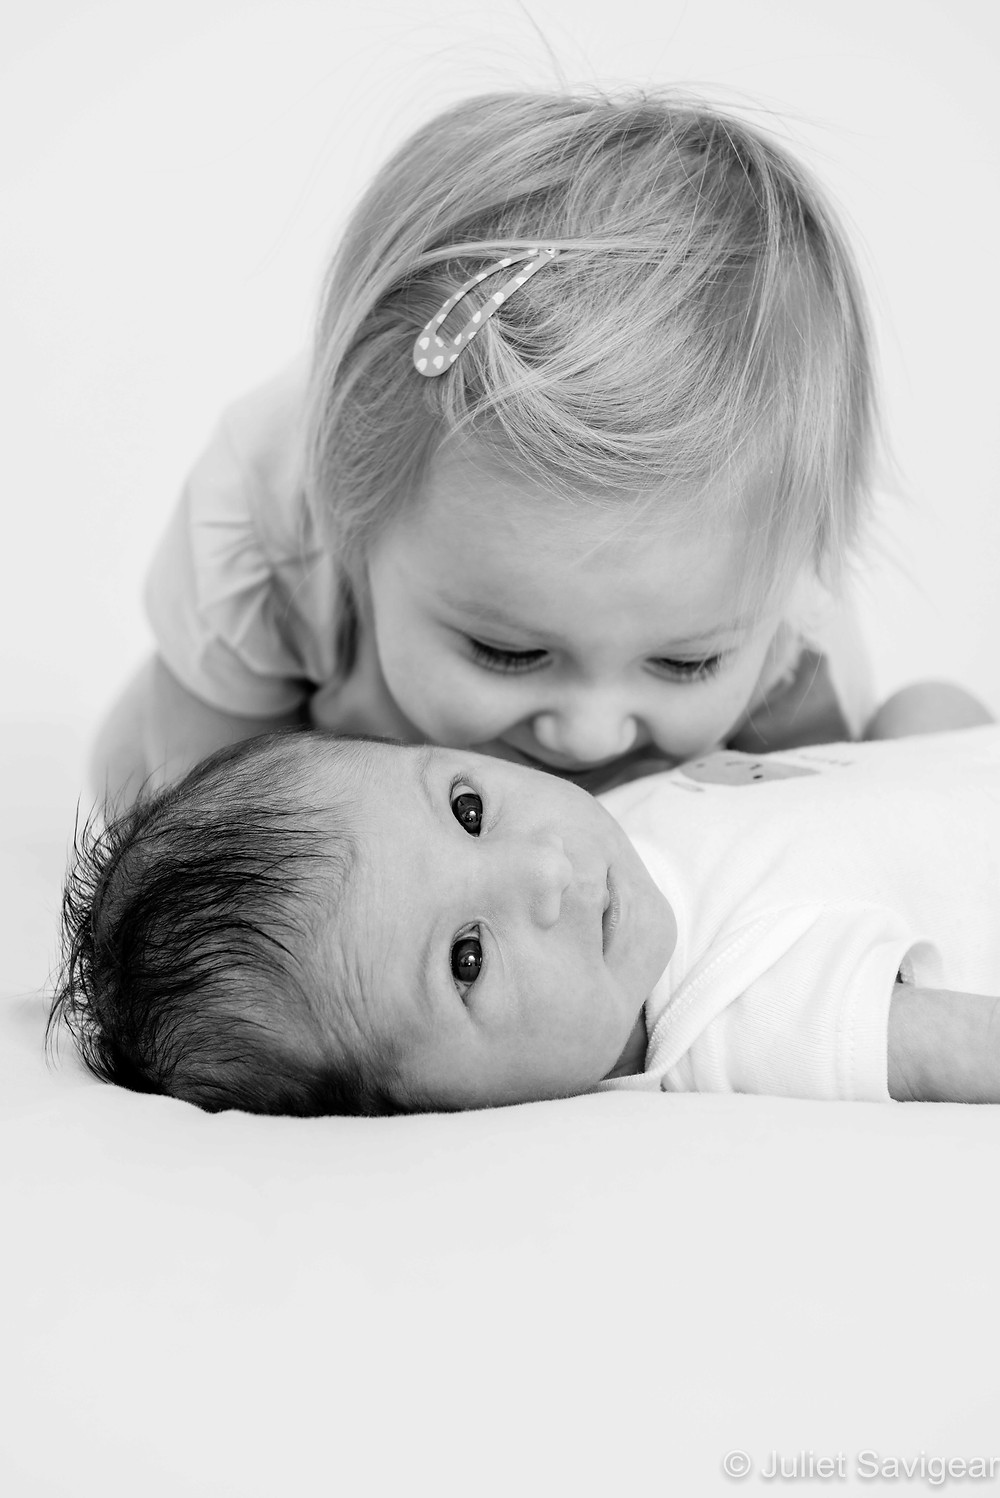 Kissing her new baby sister